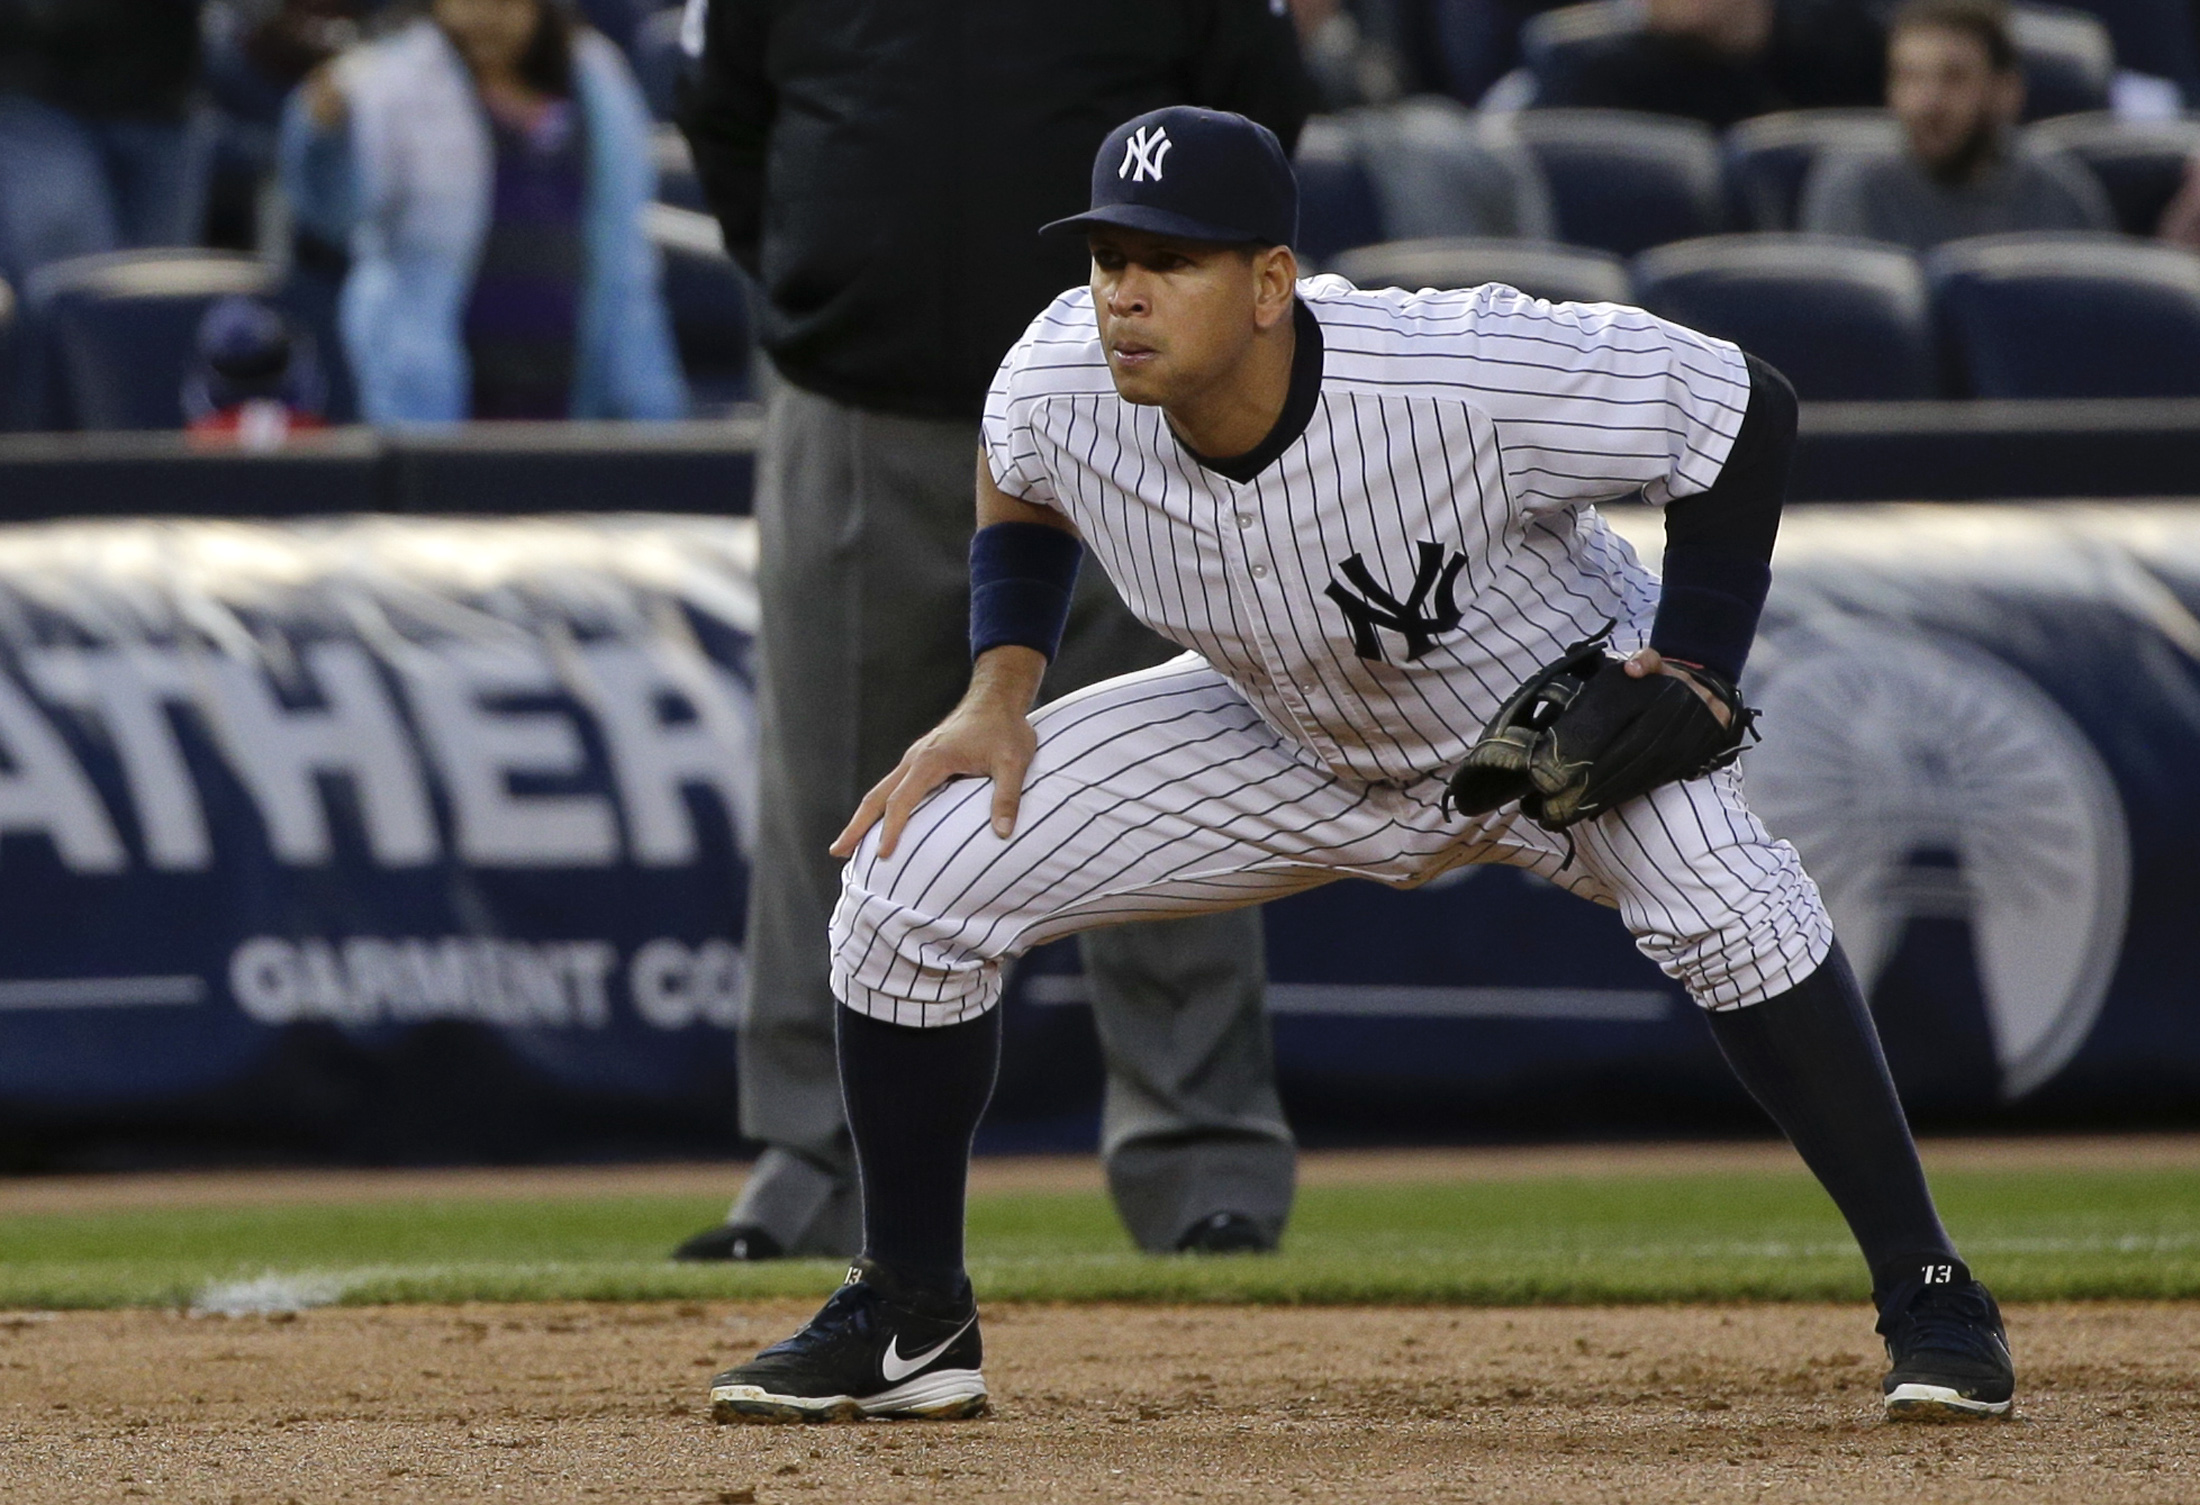 New York Yankees third baseman Alex Rodriguez prepares for a pitch against the Tampa Bay Rays in the second inning of a baseball game, Monday, April 27, 2015, in New York. (AP Photo/Julie Jacobson)